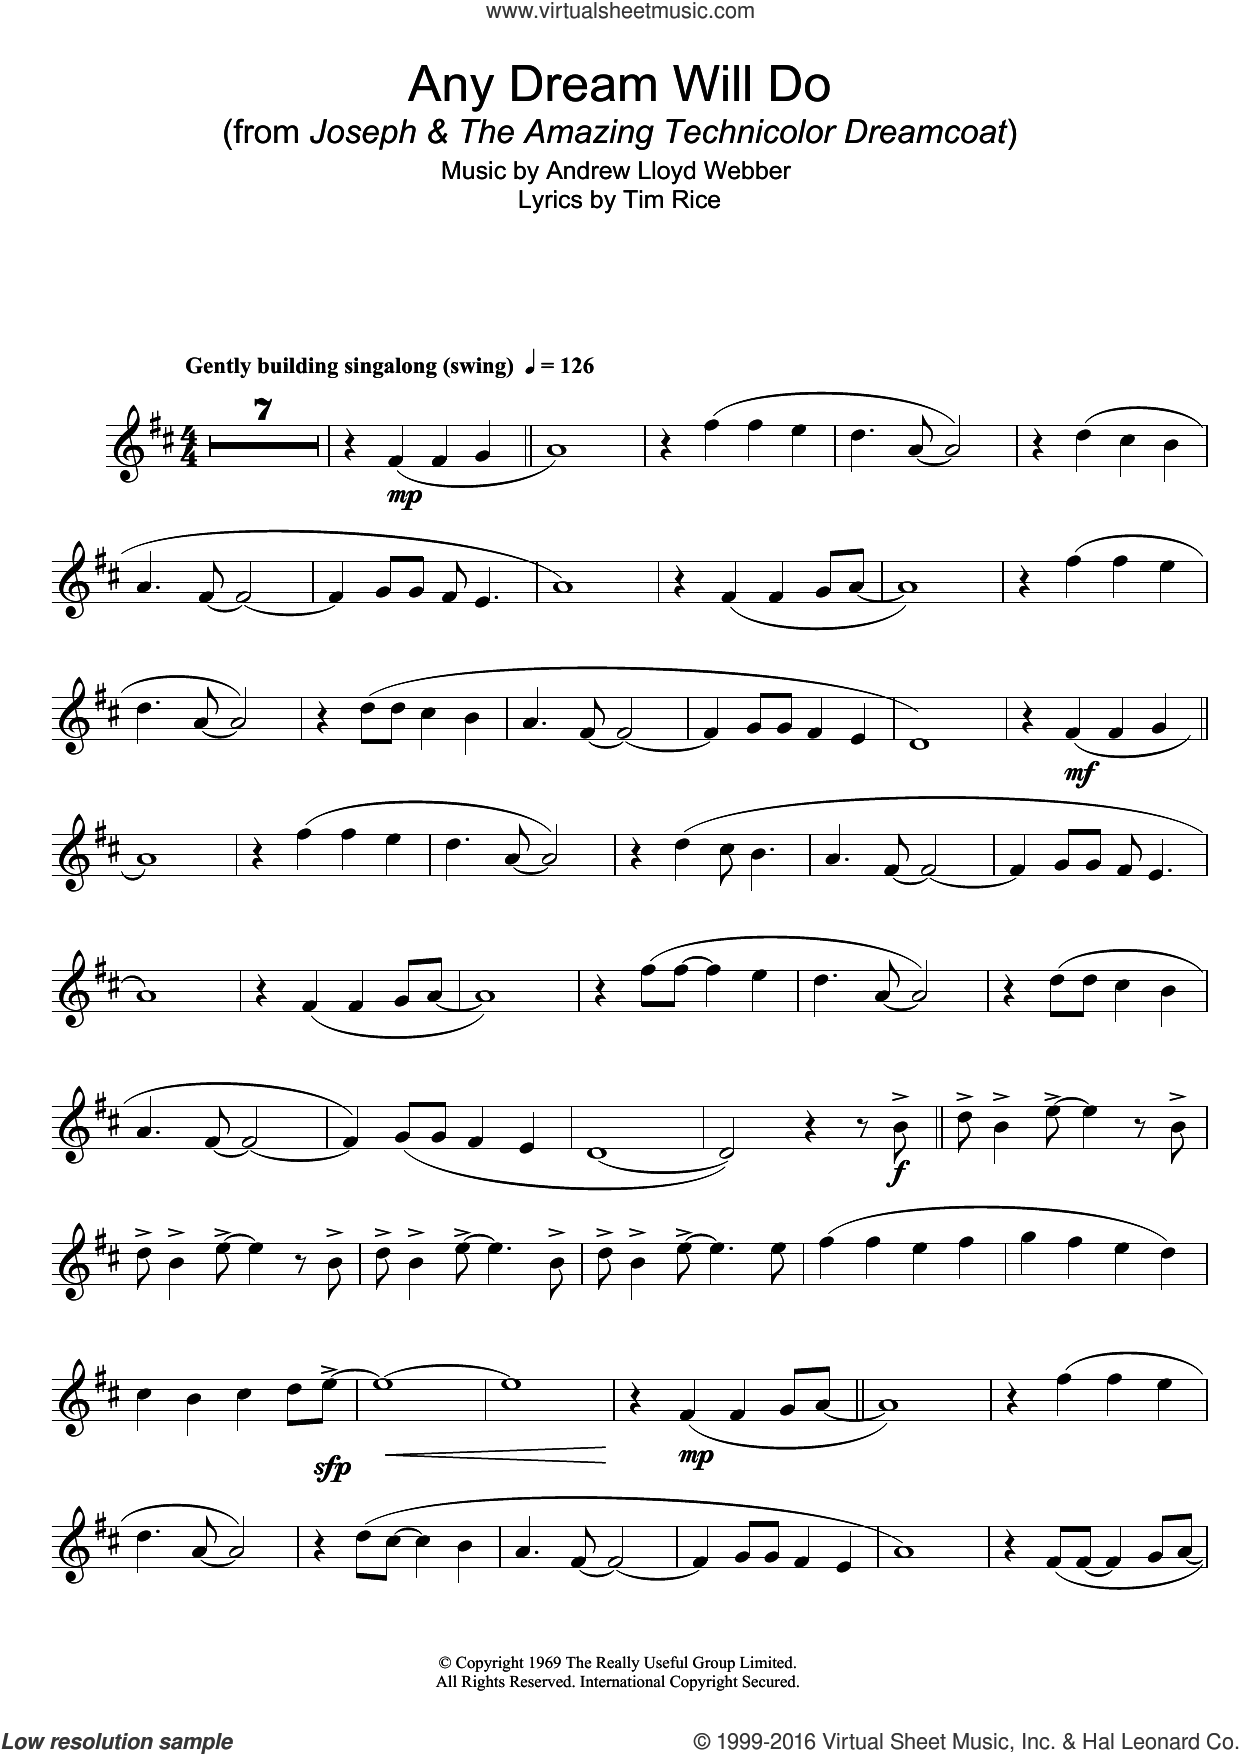 Any Dream Will Do (from Joseph And The Amazing Technicolor Dreamcoat) sheet music for tenor saxophone solo by Andrew Lloyd Webber and Tim Rice, intermediate skill level